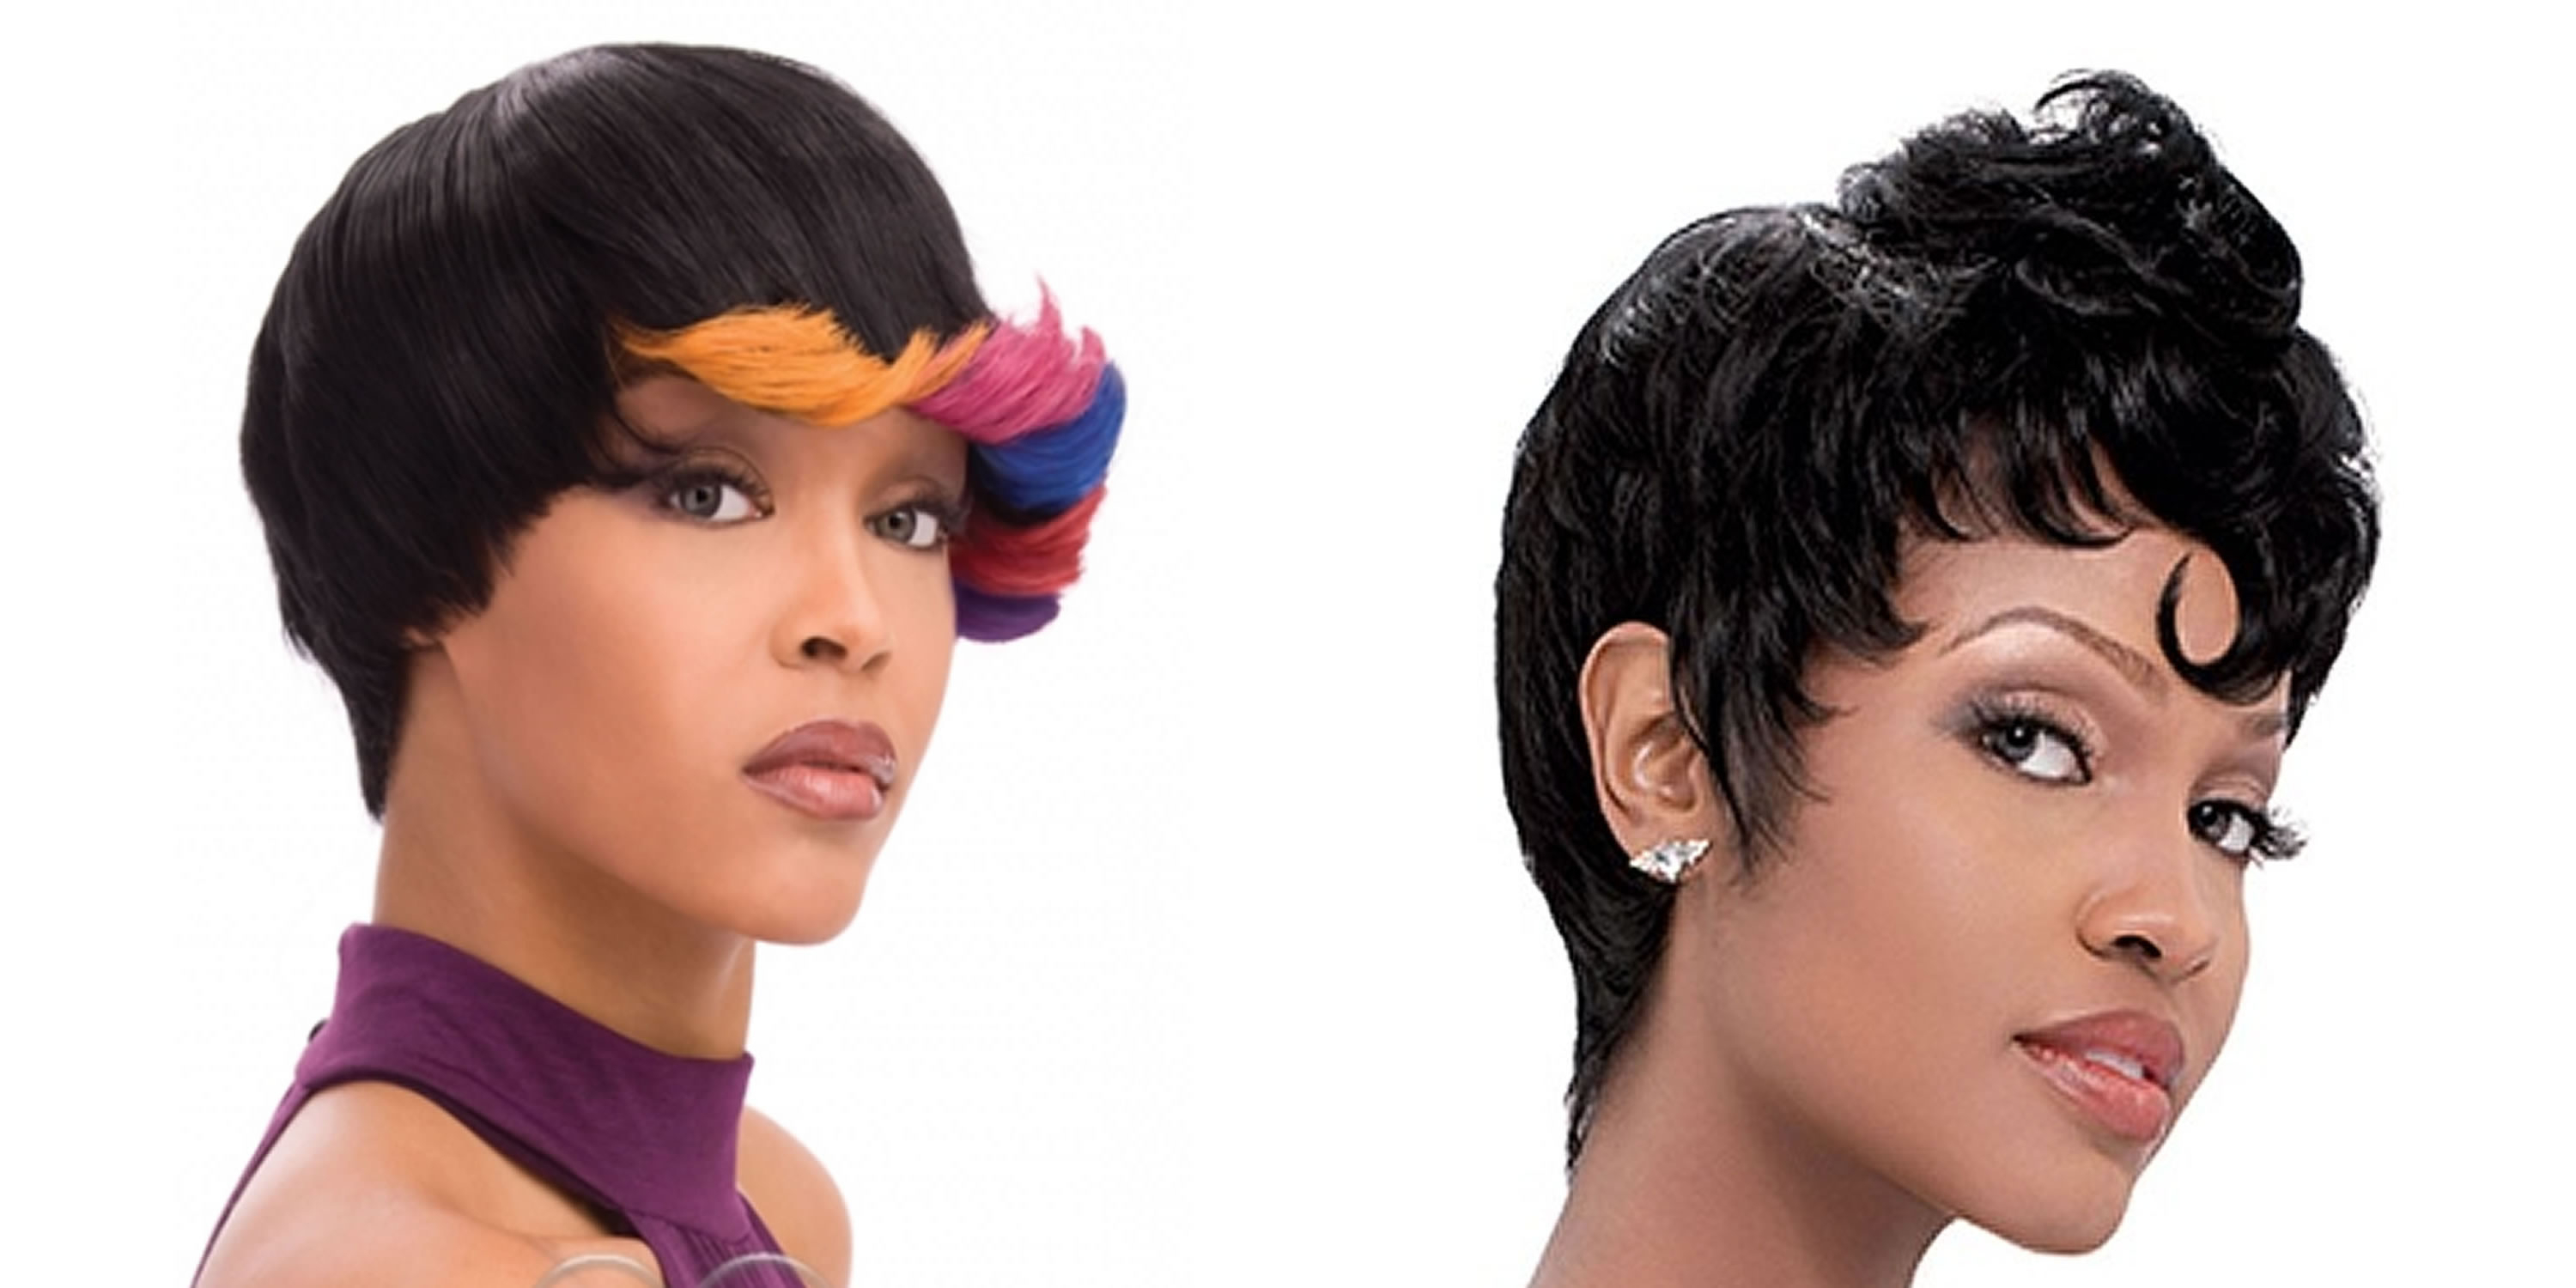 33 Top Pixie Hairstyles For Older Women   Short Pixie Haircuts For In Shorter Black Messy Hairstyles (View 14 of 20)